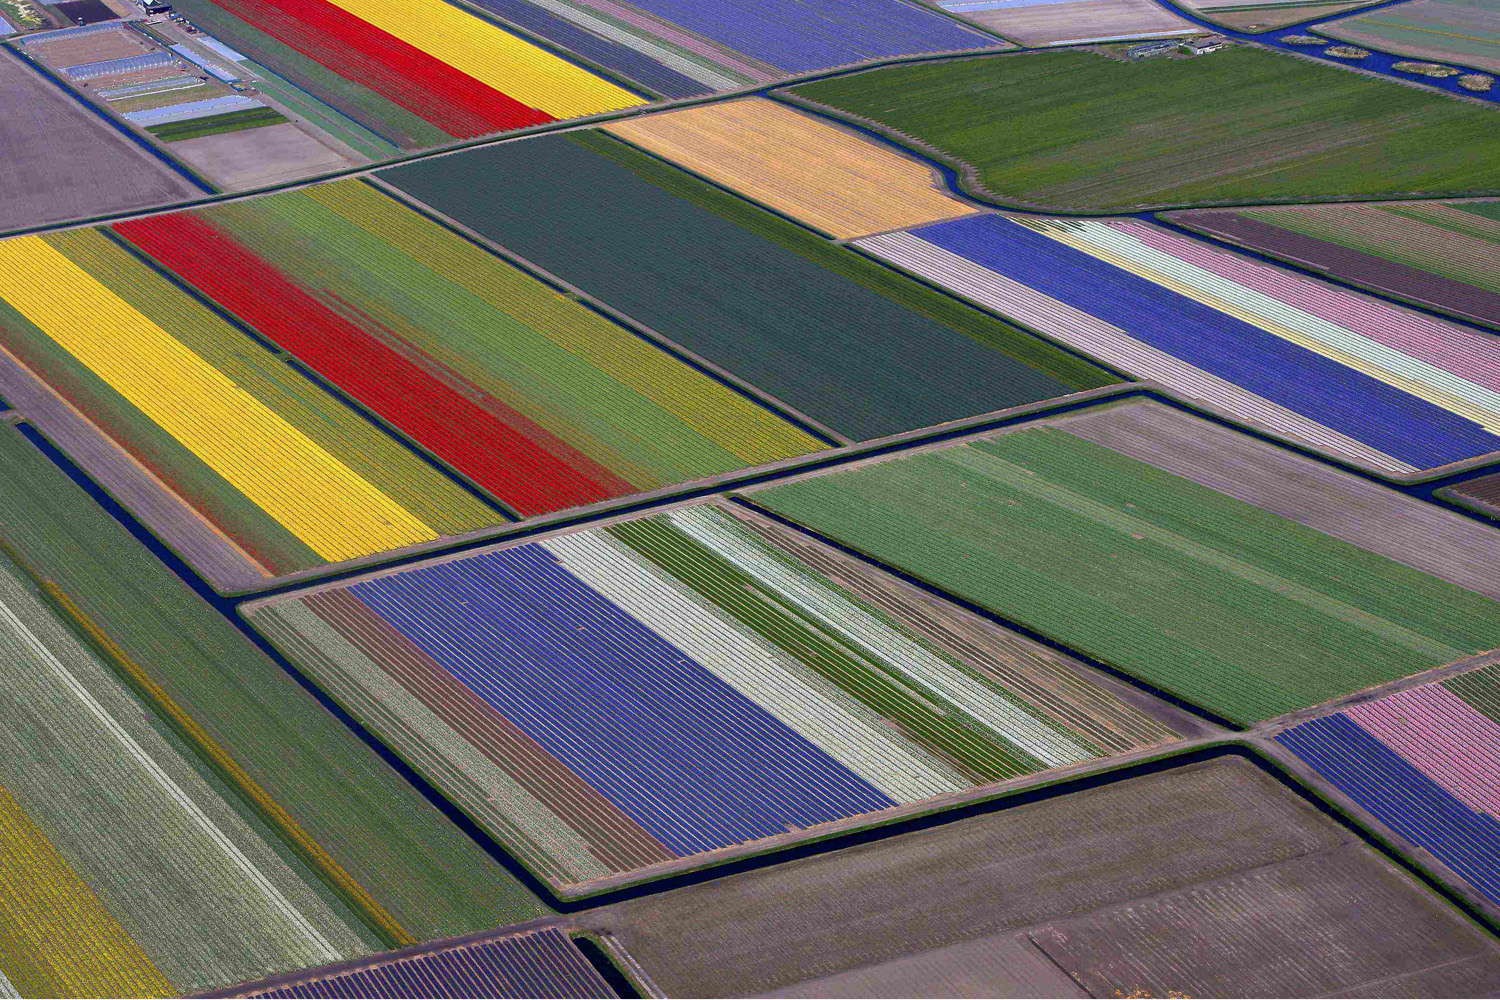 Apr. 9, 2014. Aerial view of flower fields near the Keukenhof park, also known as the Garden of Europe, in Lisse Keukenhof. Employing some 30 gardeners, it is considered to be the world's largest flower garden displaying millions of flowers every year.